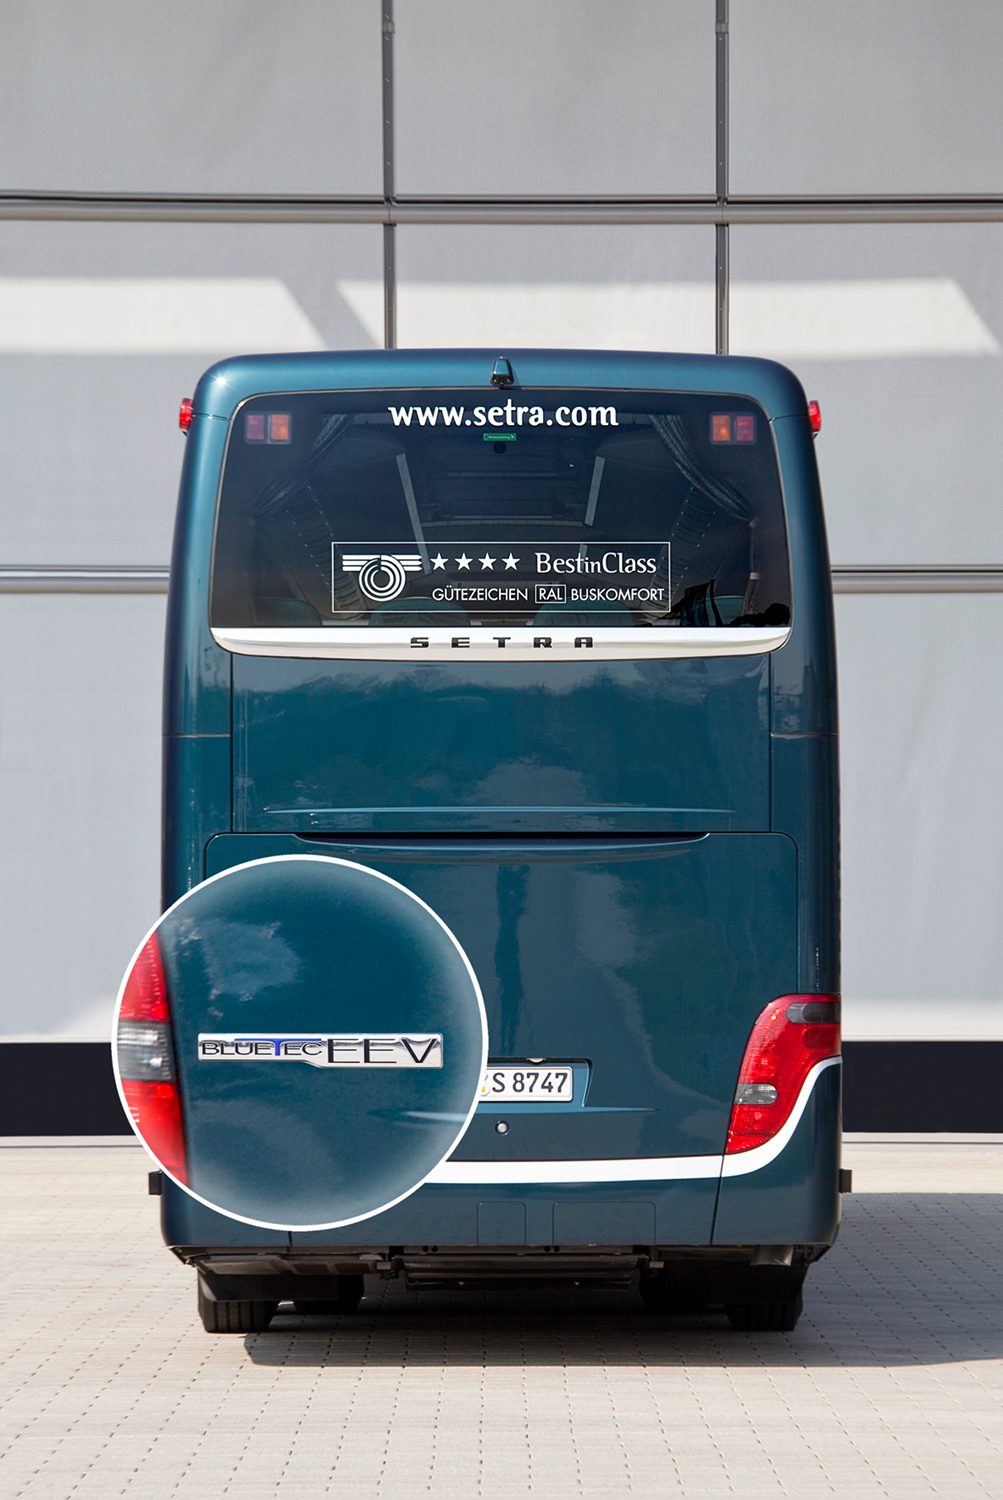 Setra Busses Meet Eev Standards Without Particulate Filters Autoevolution